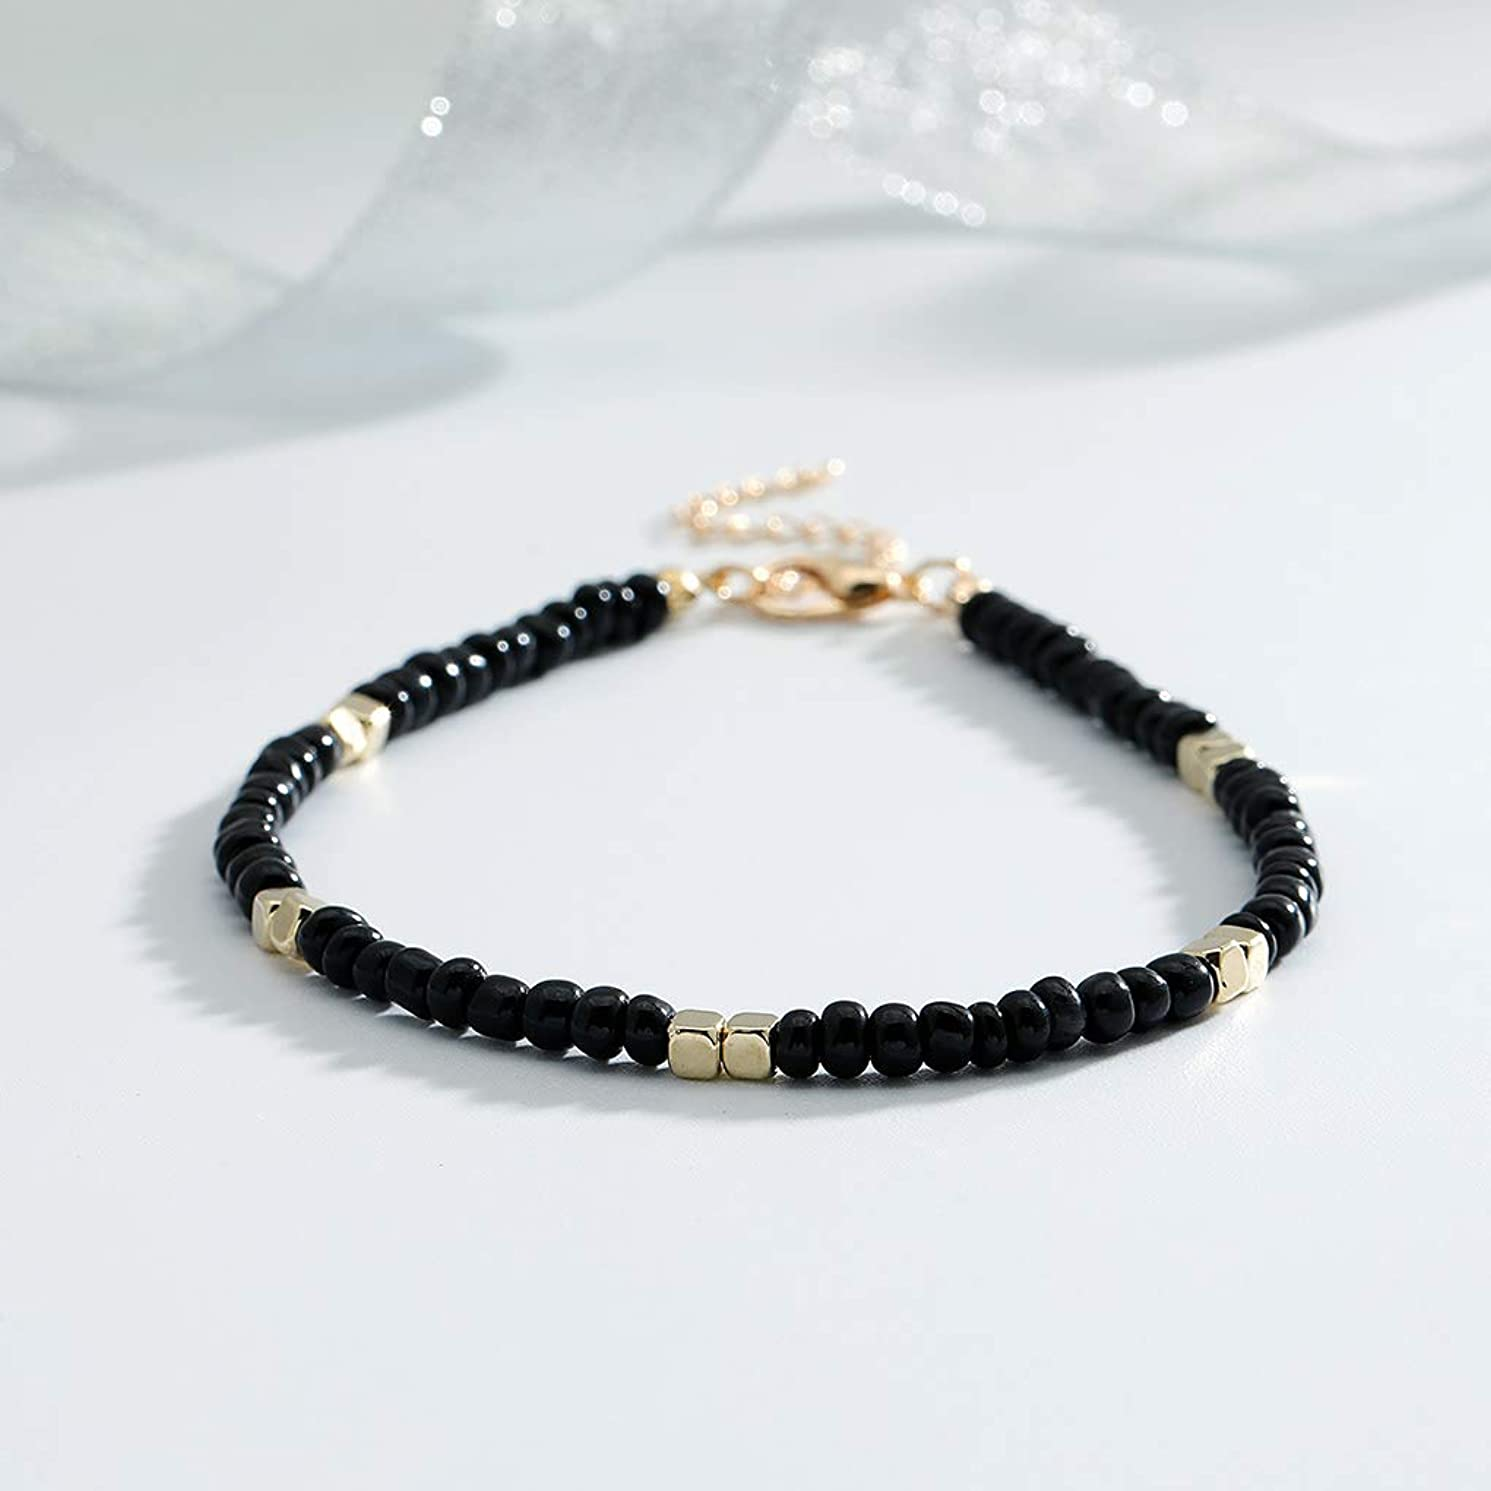 Yalice Minimalist Rice Beaded Anklets Colorful Seed Ankle Bracelet Beach Foot Chain for Women and Girls (Black)